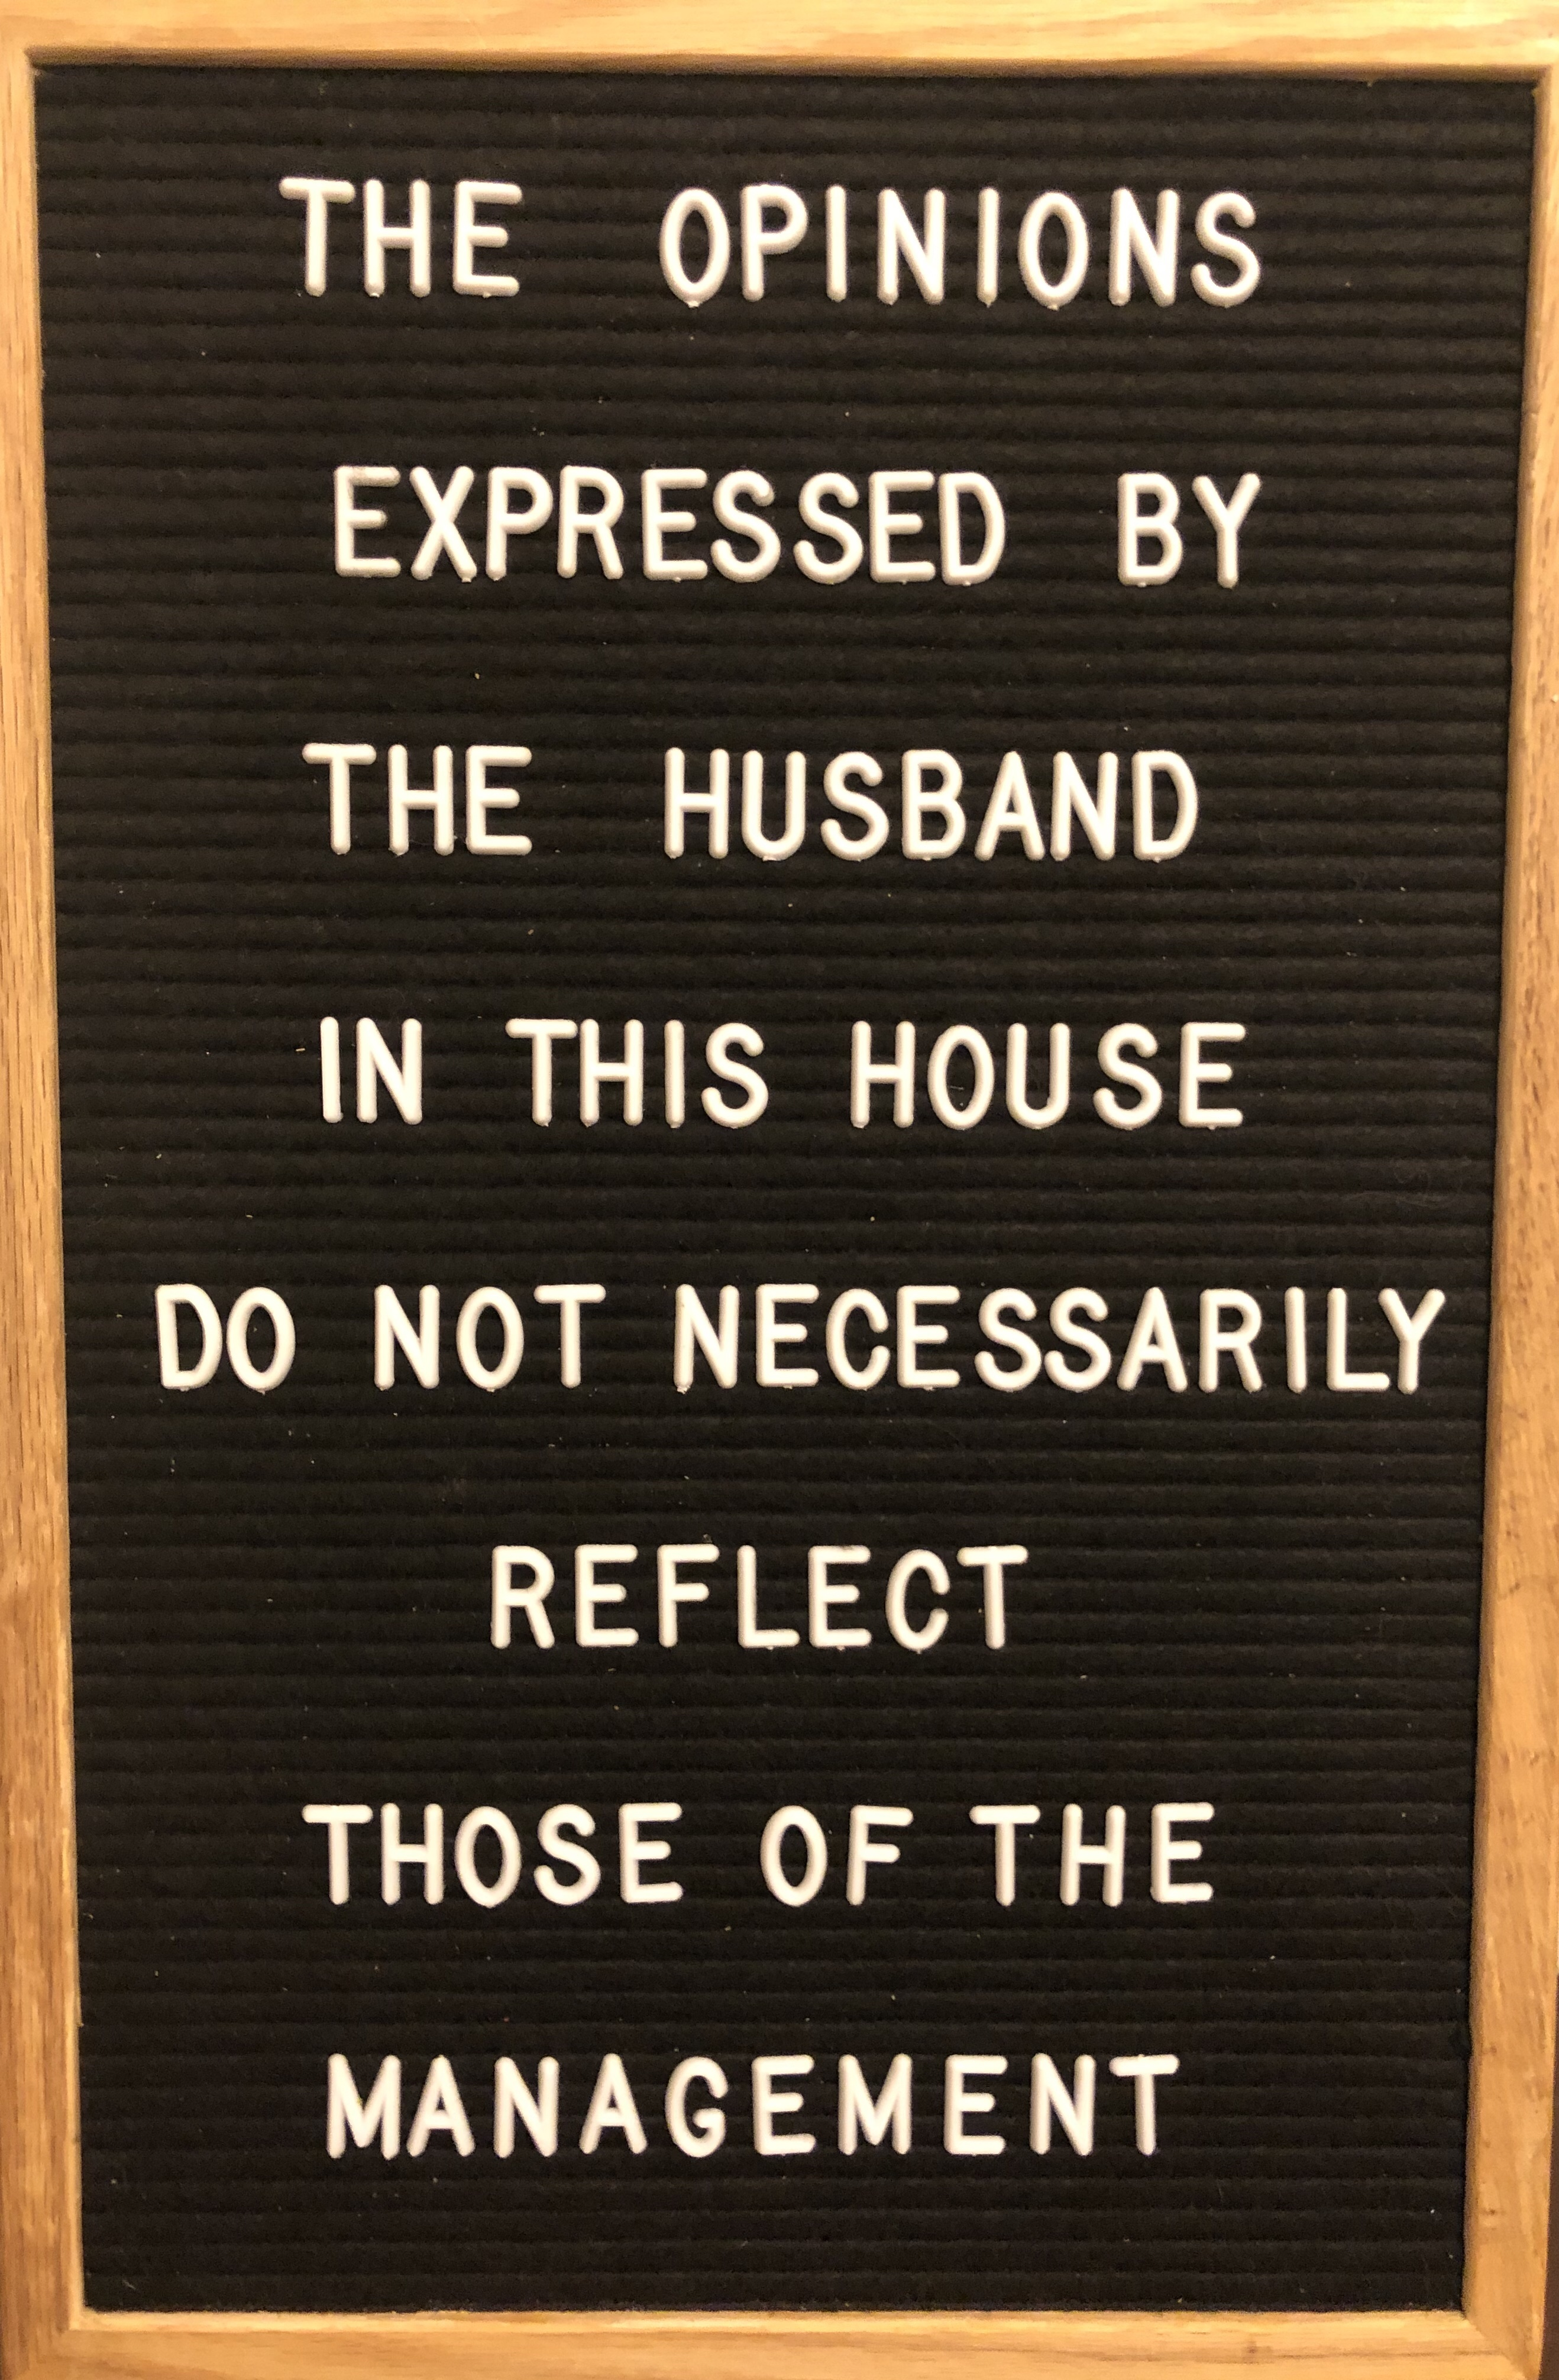 The opinions expressed by the husband in this house do not necessarily reflect those of the management